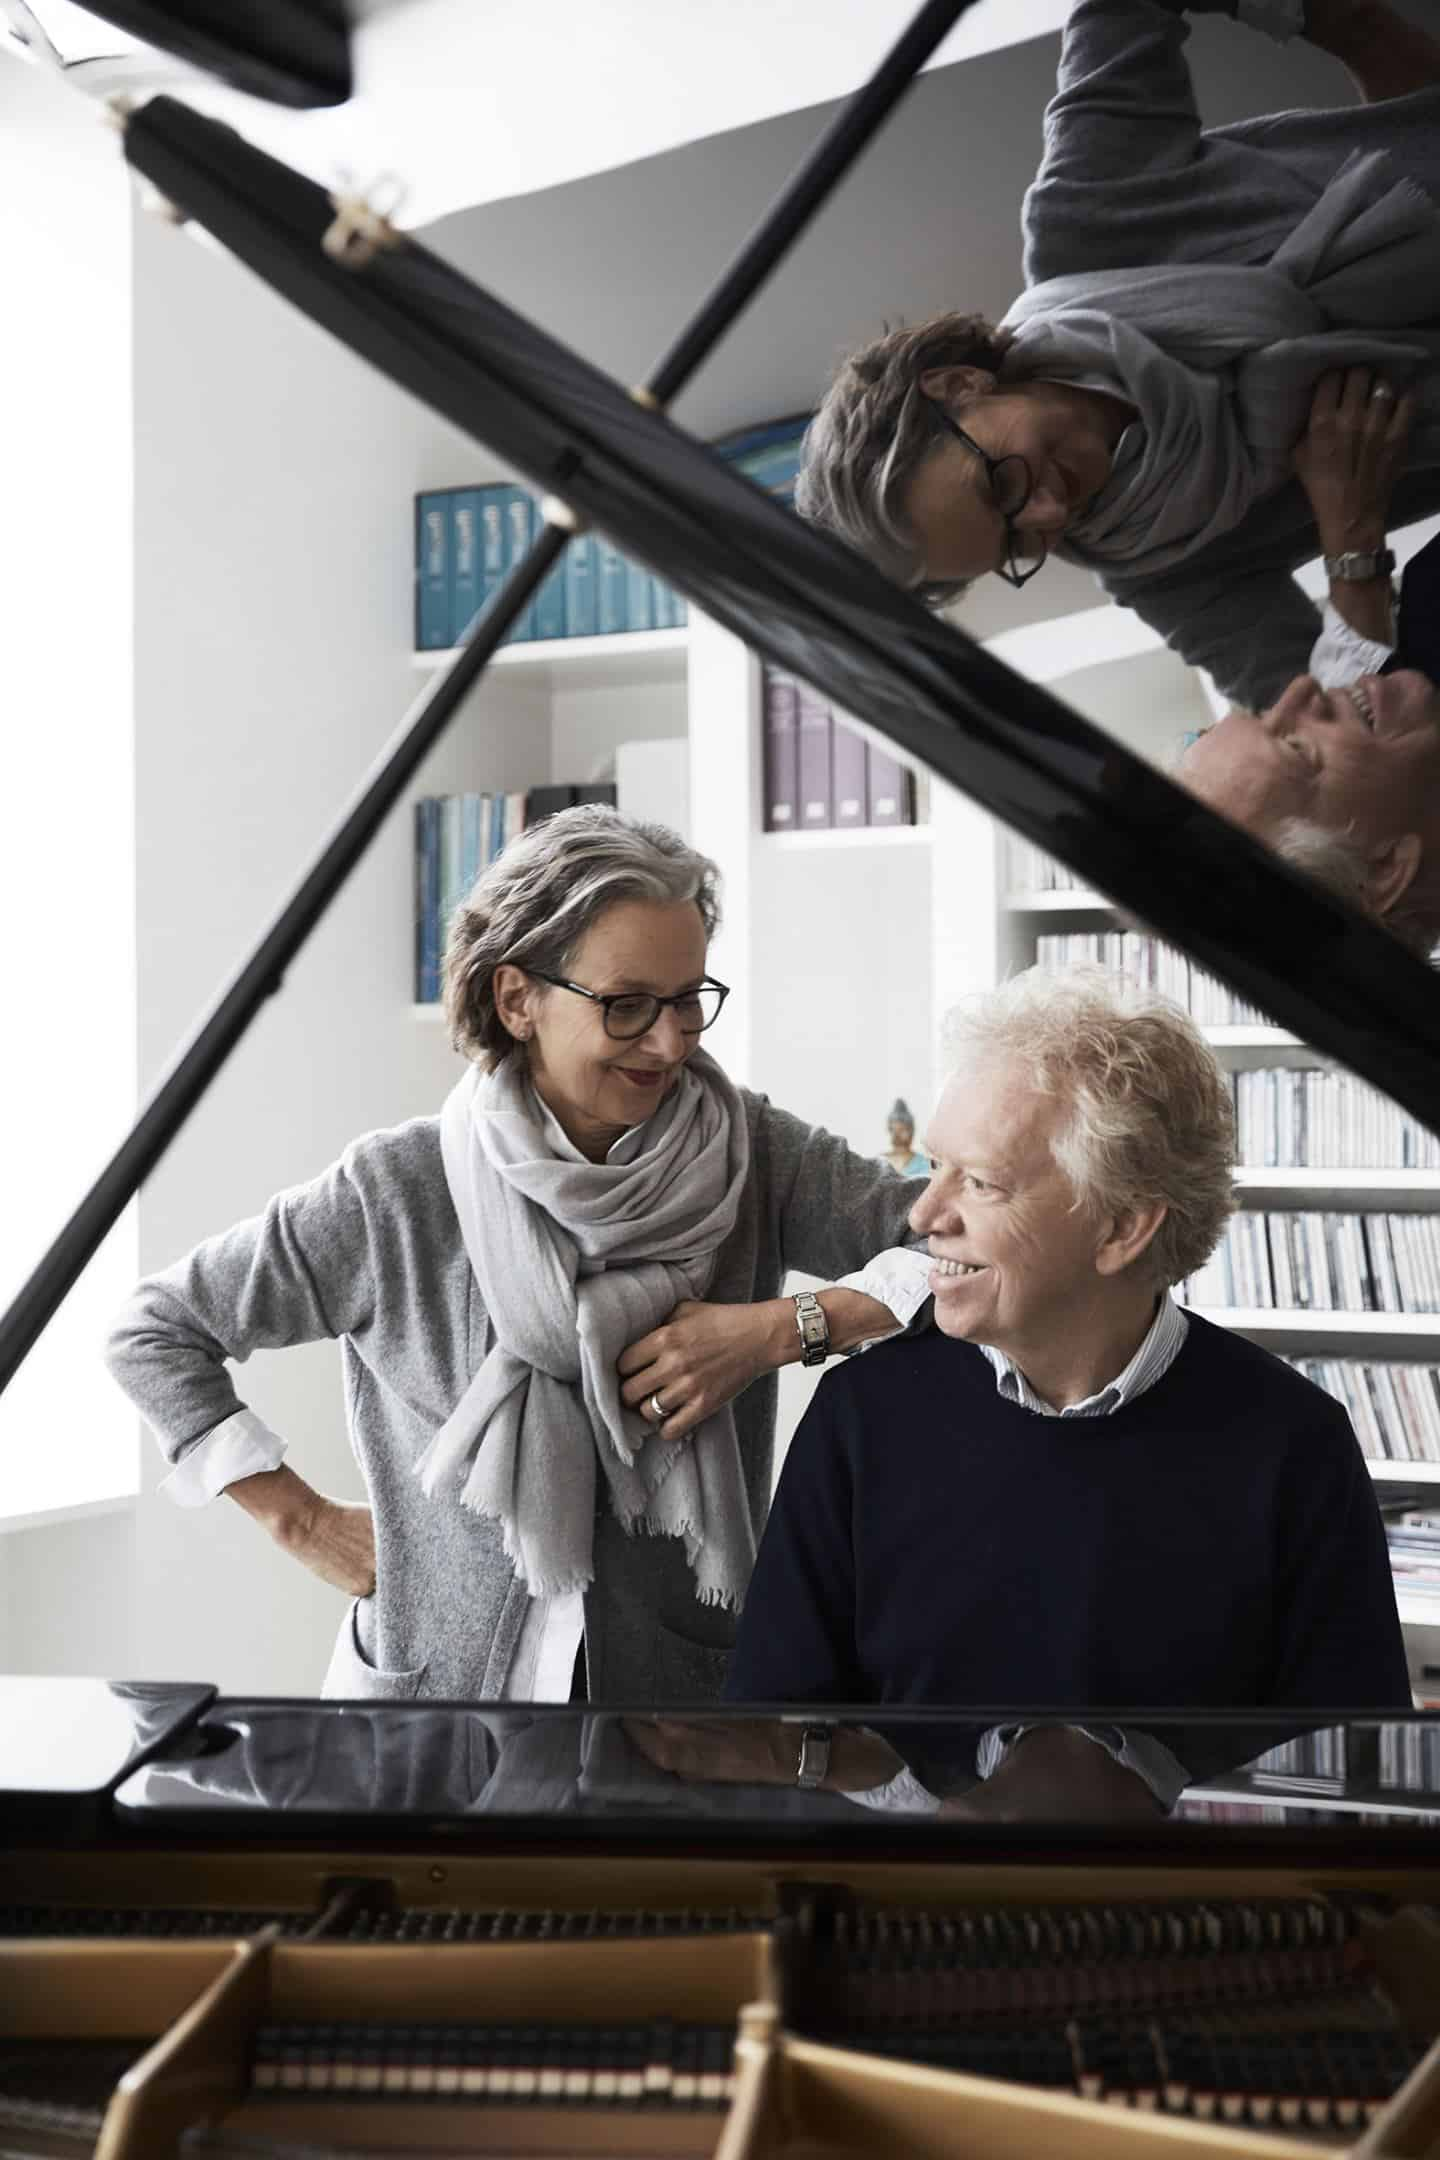 Vipp owner Jette Egelung and her husband Mogens Dahl at a concert piano in their converted factory home